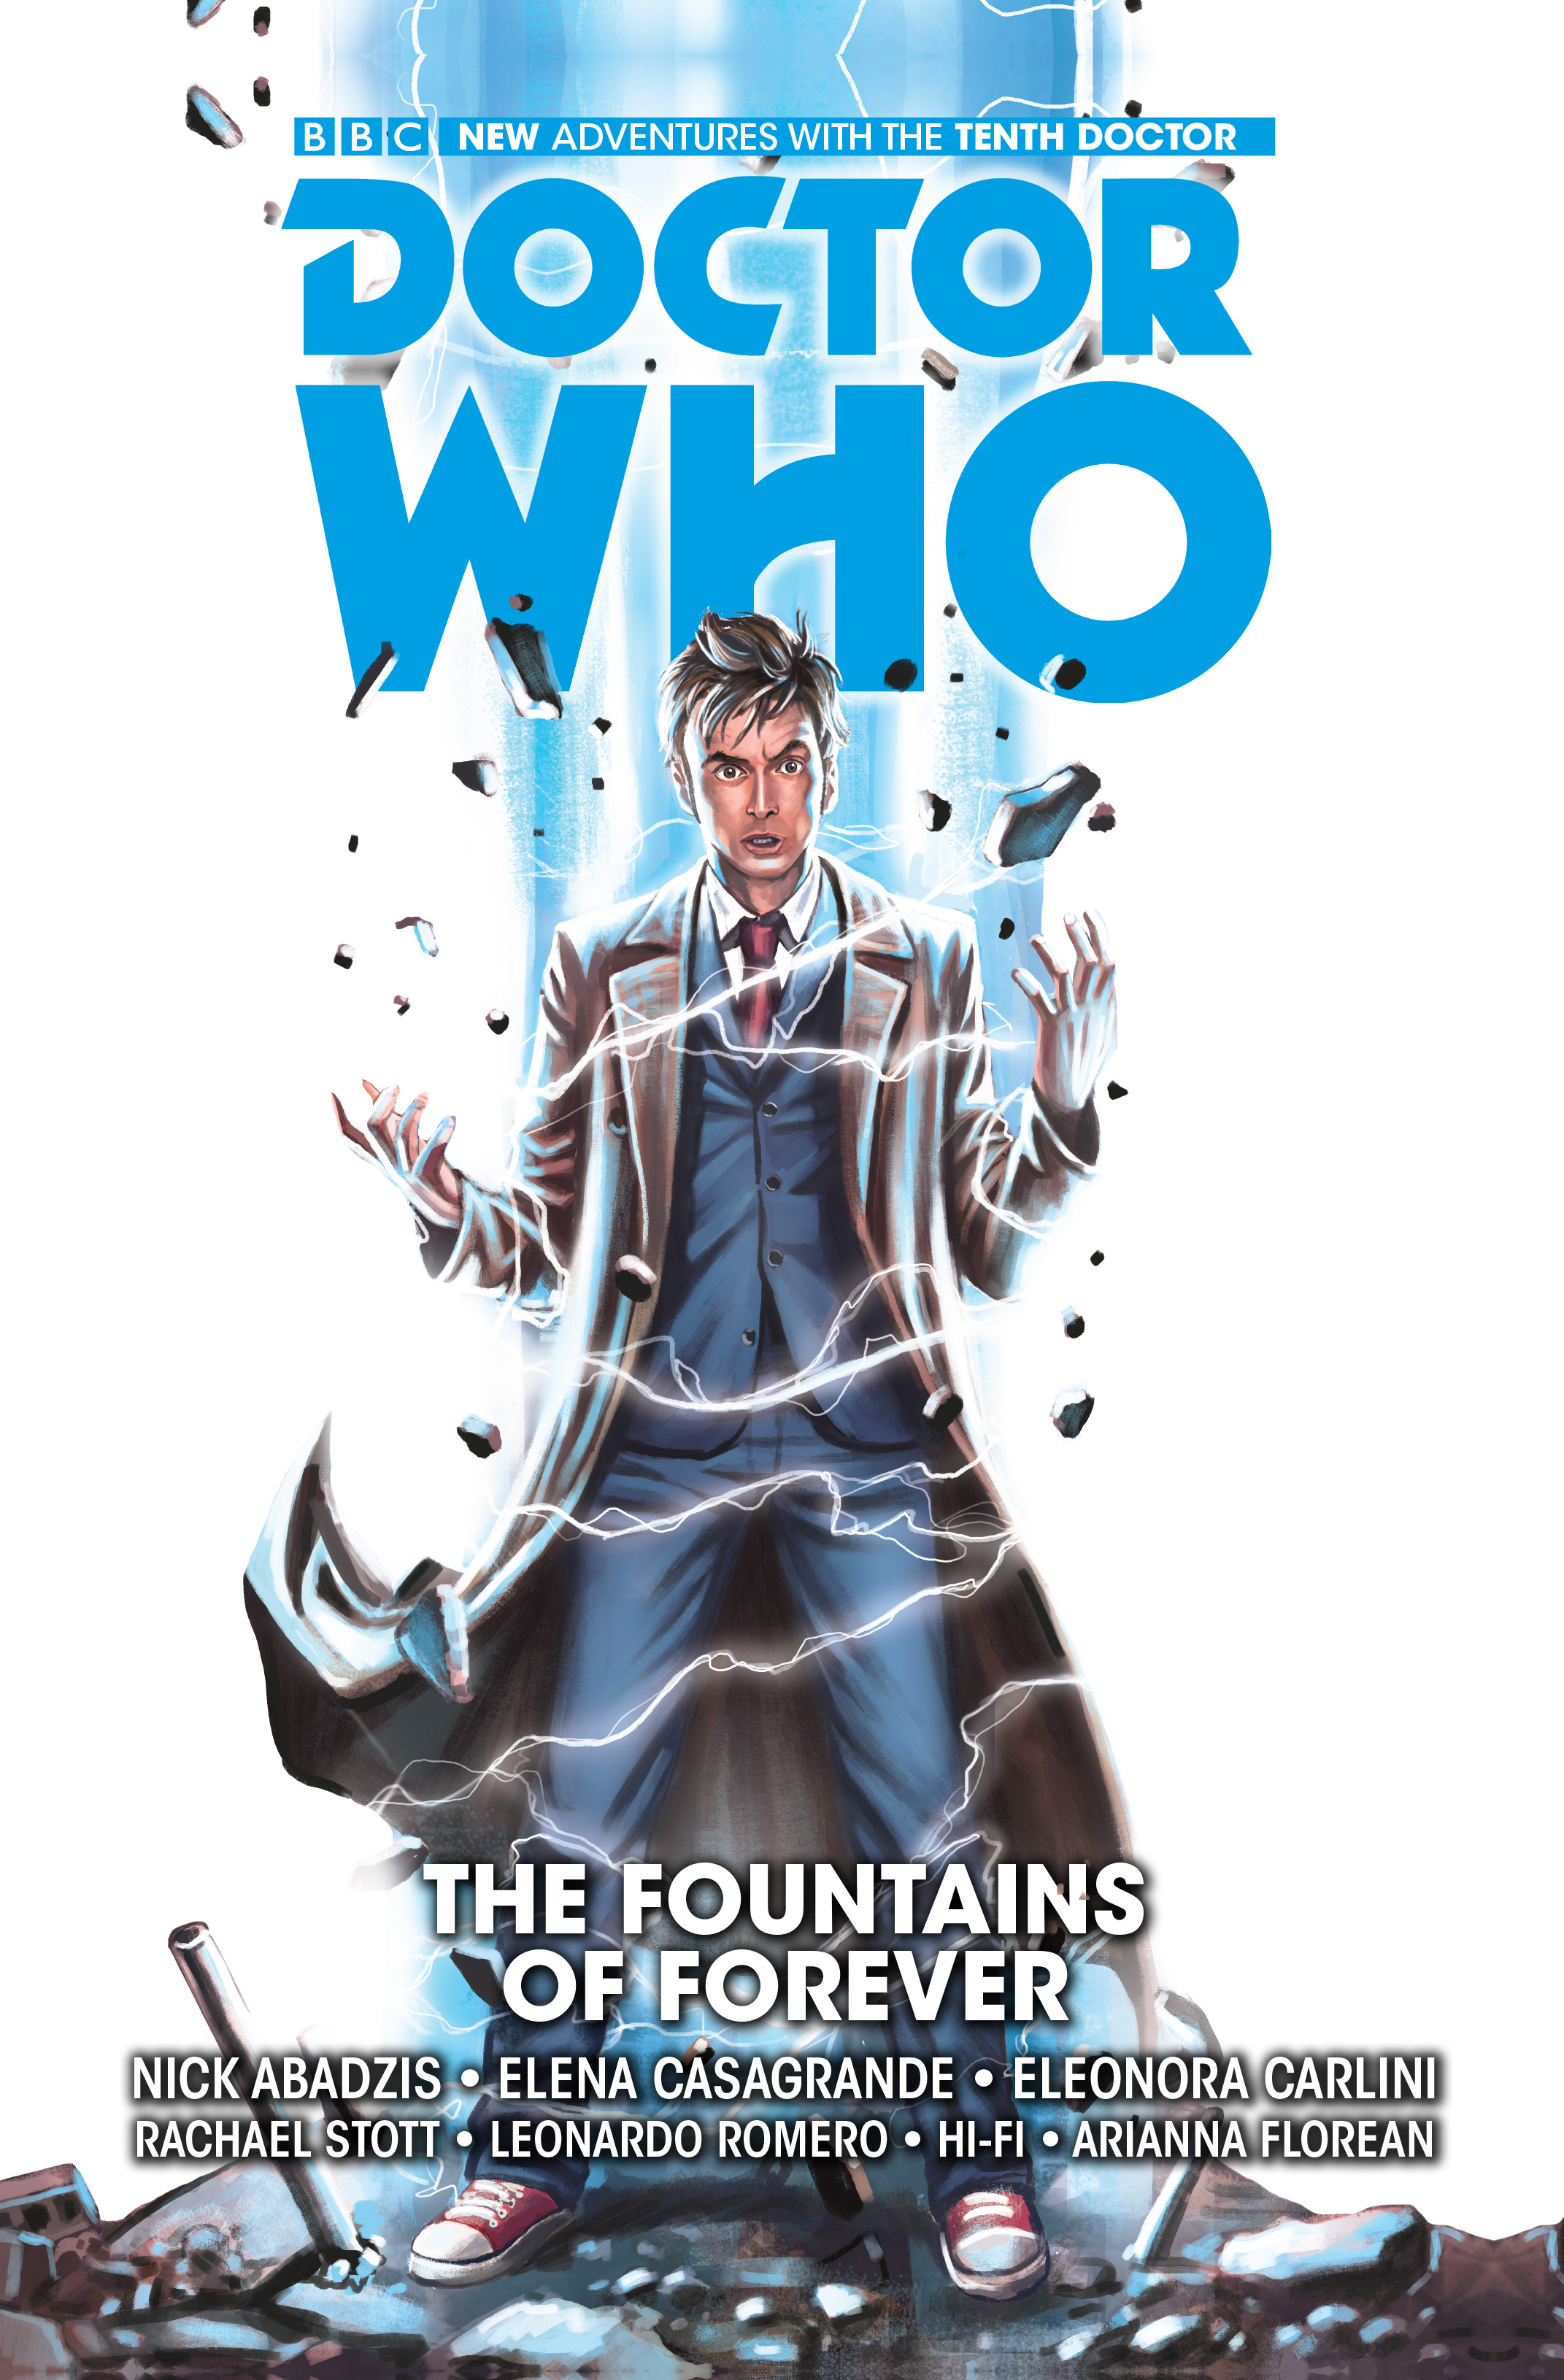 THE TENTH DOCTOR VOL. 3 (Credit: Titan)